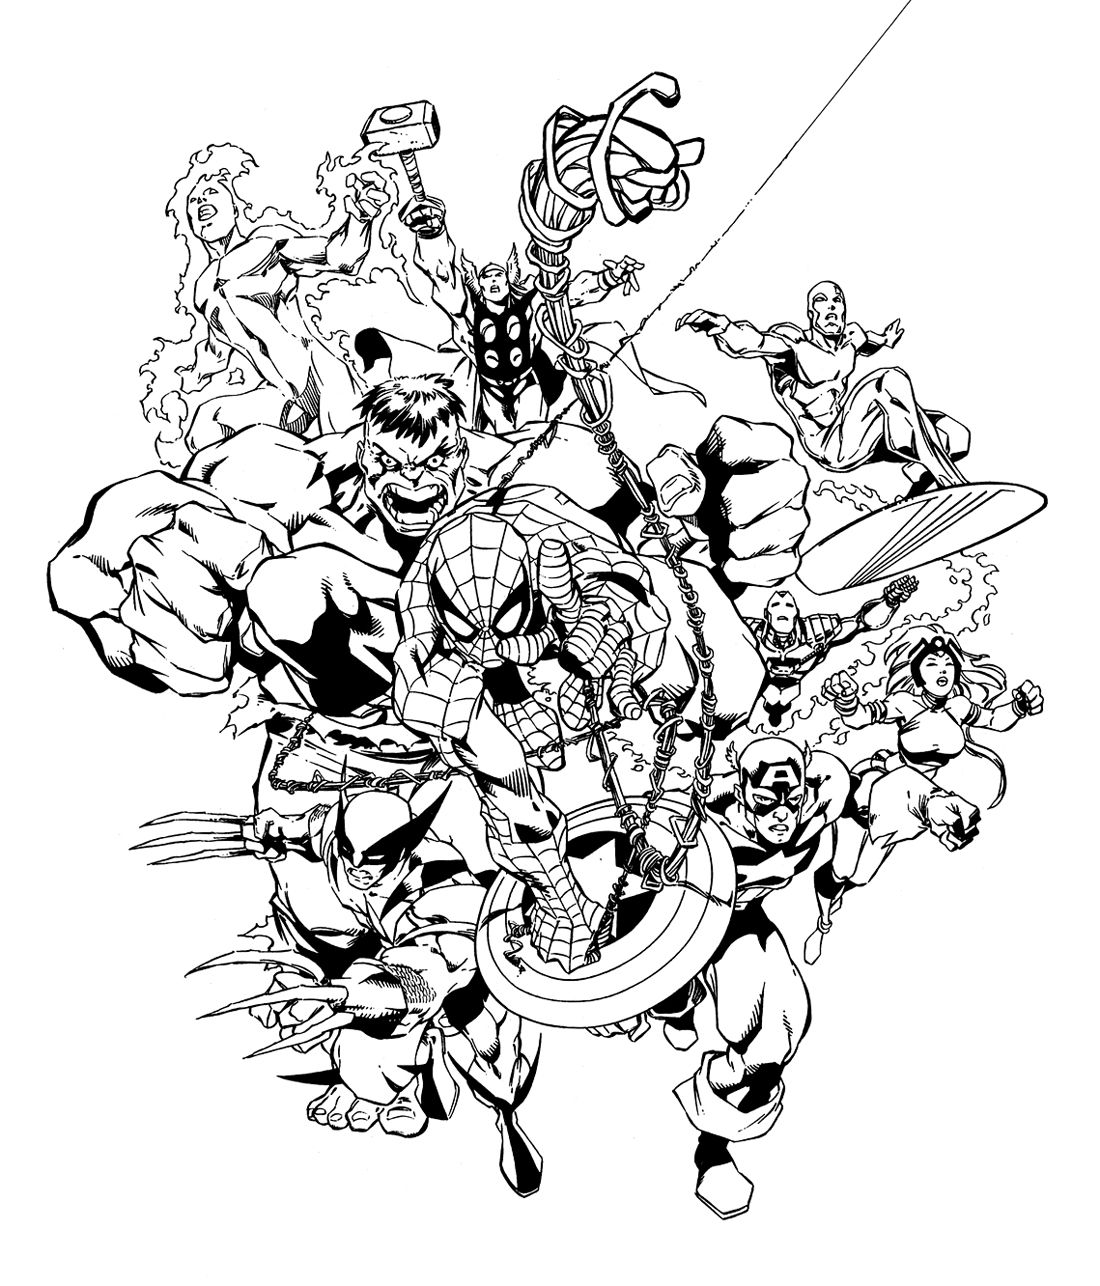 young marvel coloring book marvel heroes by carlos pacheco marvel coloring young coloring marvel book